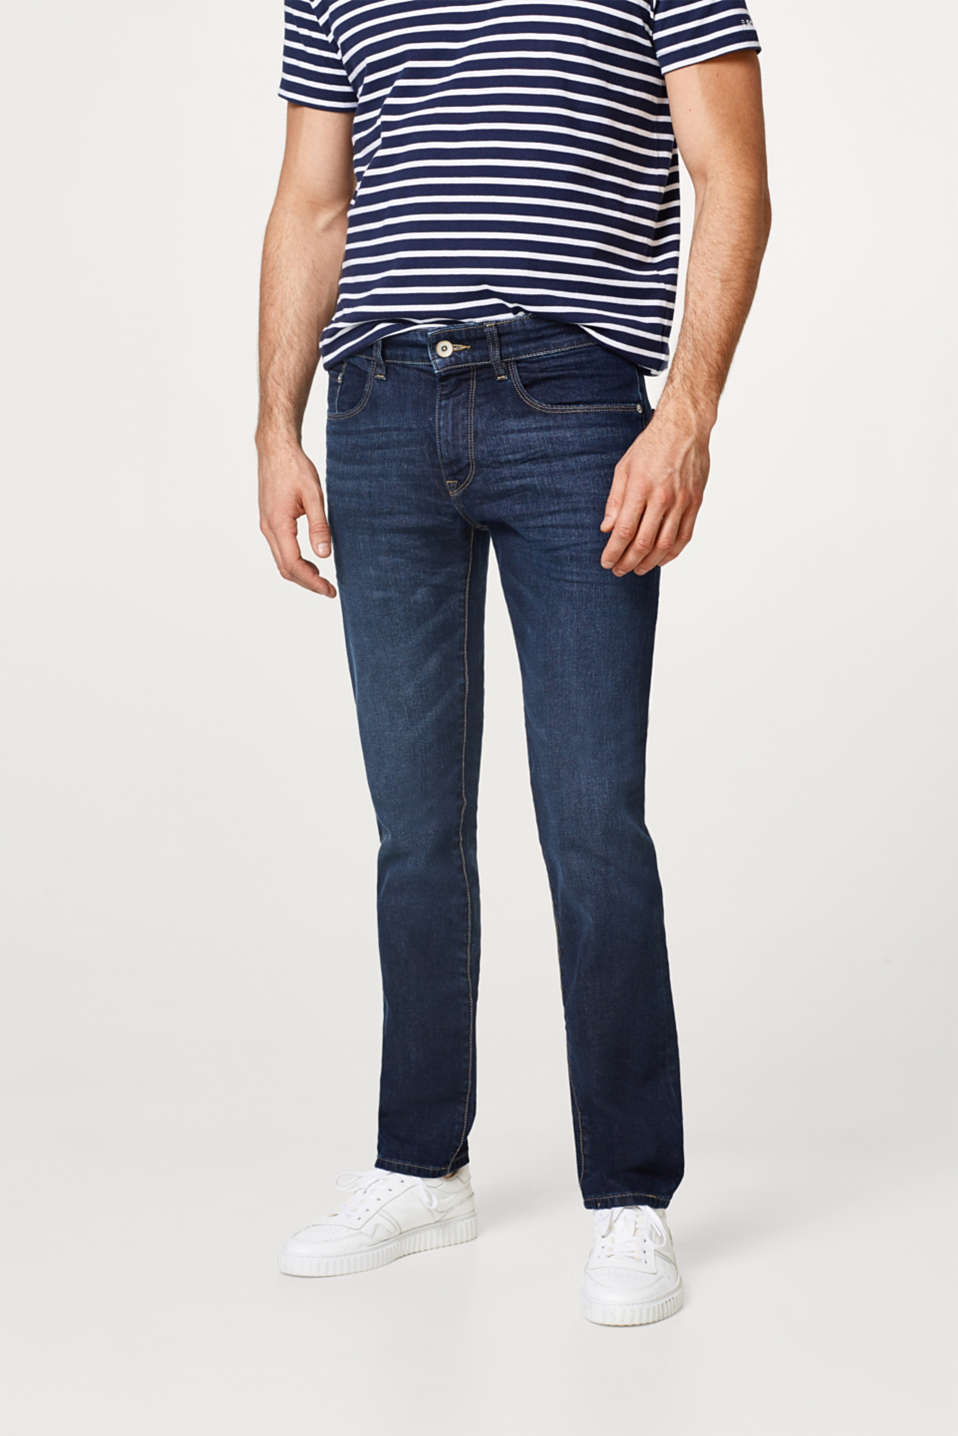 Esprit - Stretch-jeans med let vask